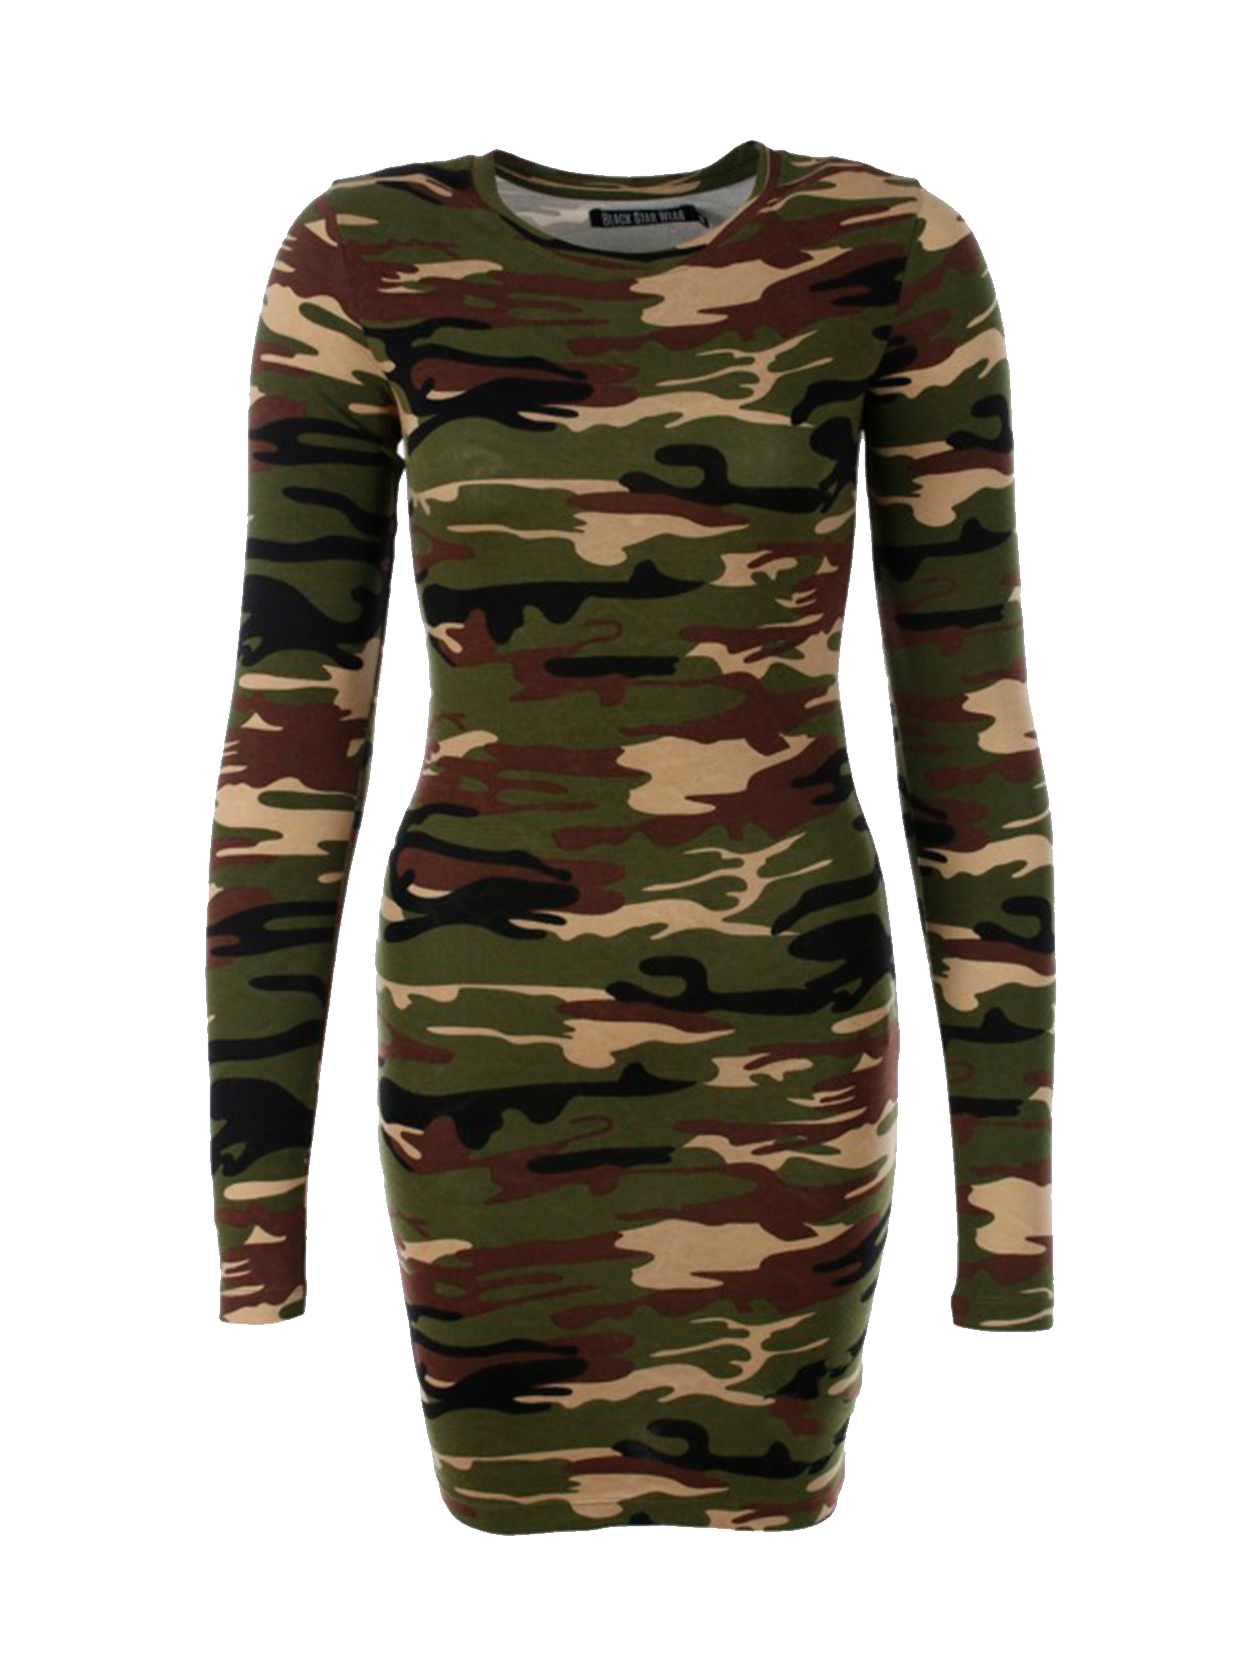 Womens dress Camo 2.0Womens dress in camouflage by Black Star Wear. Mostly cotton, o-neck, long sleeves, knee length, slim fit. Small Black Star label on the front.<br><br>size: XS<br>color: Camouflage<br>gender: female